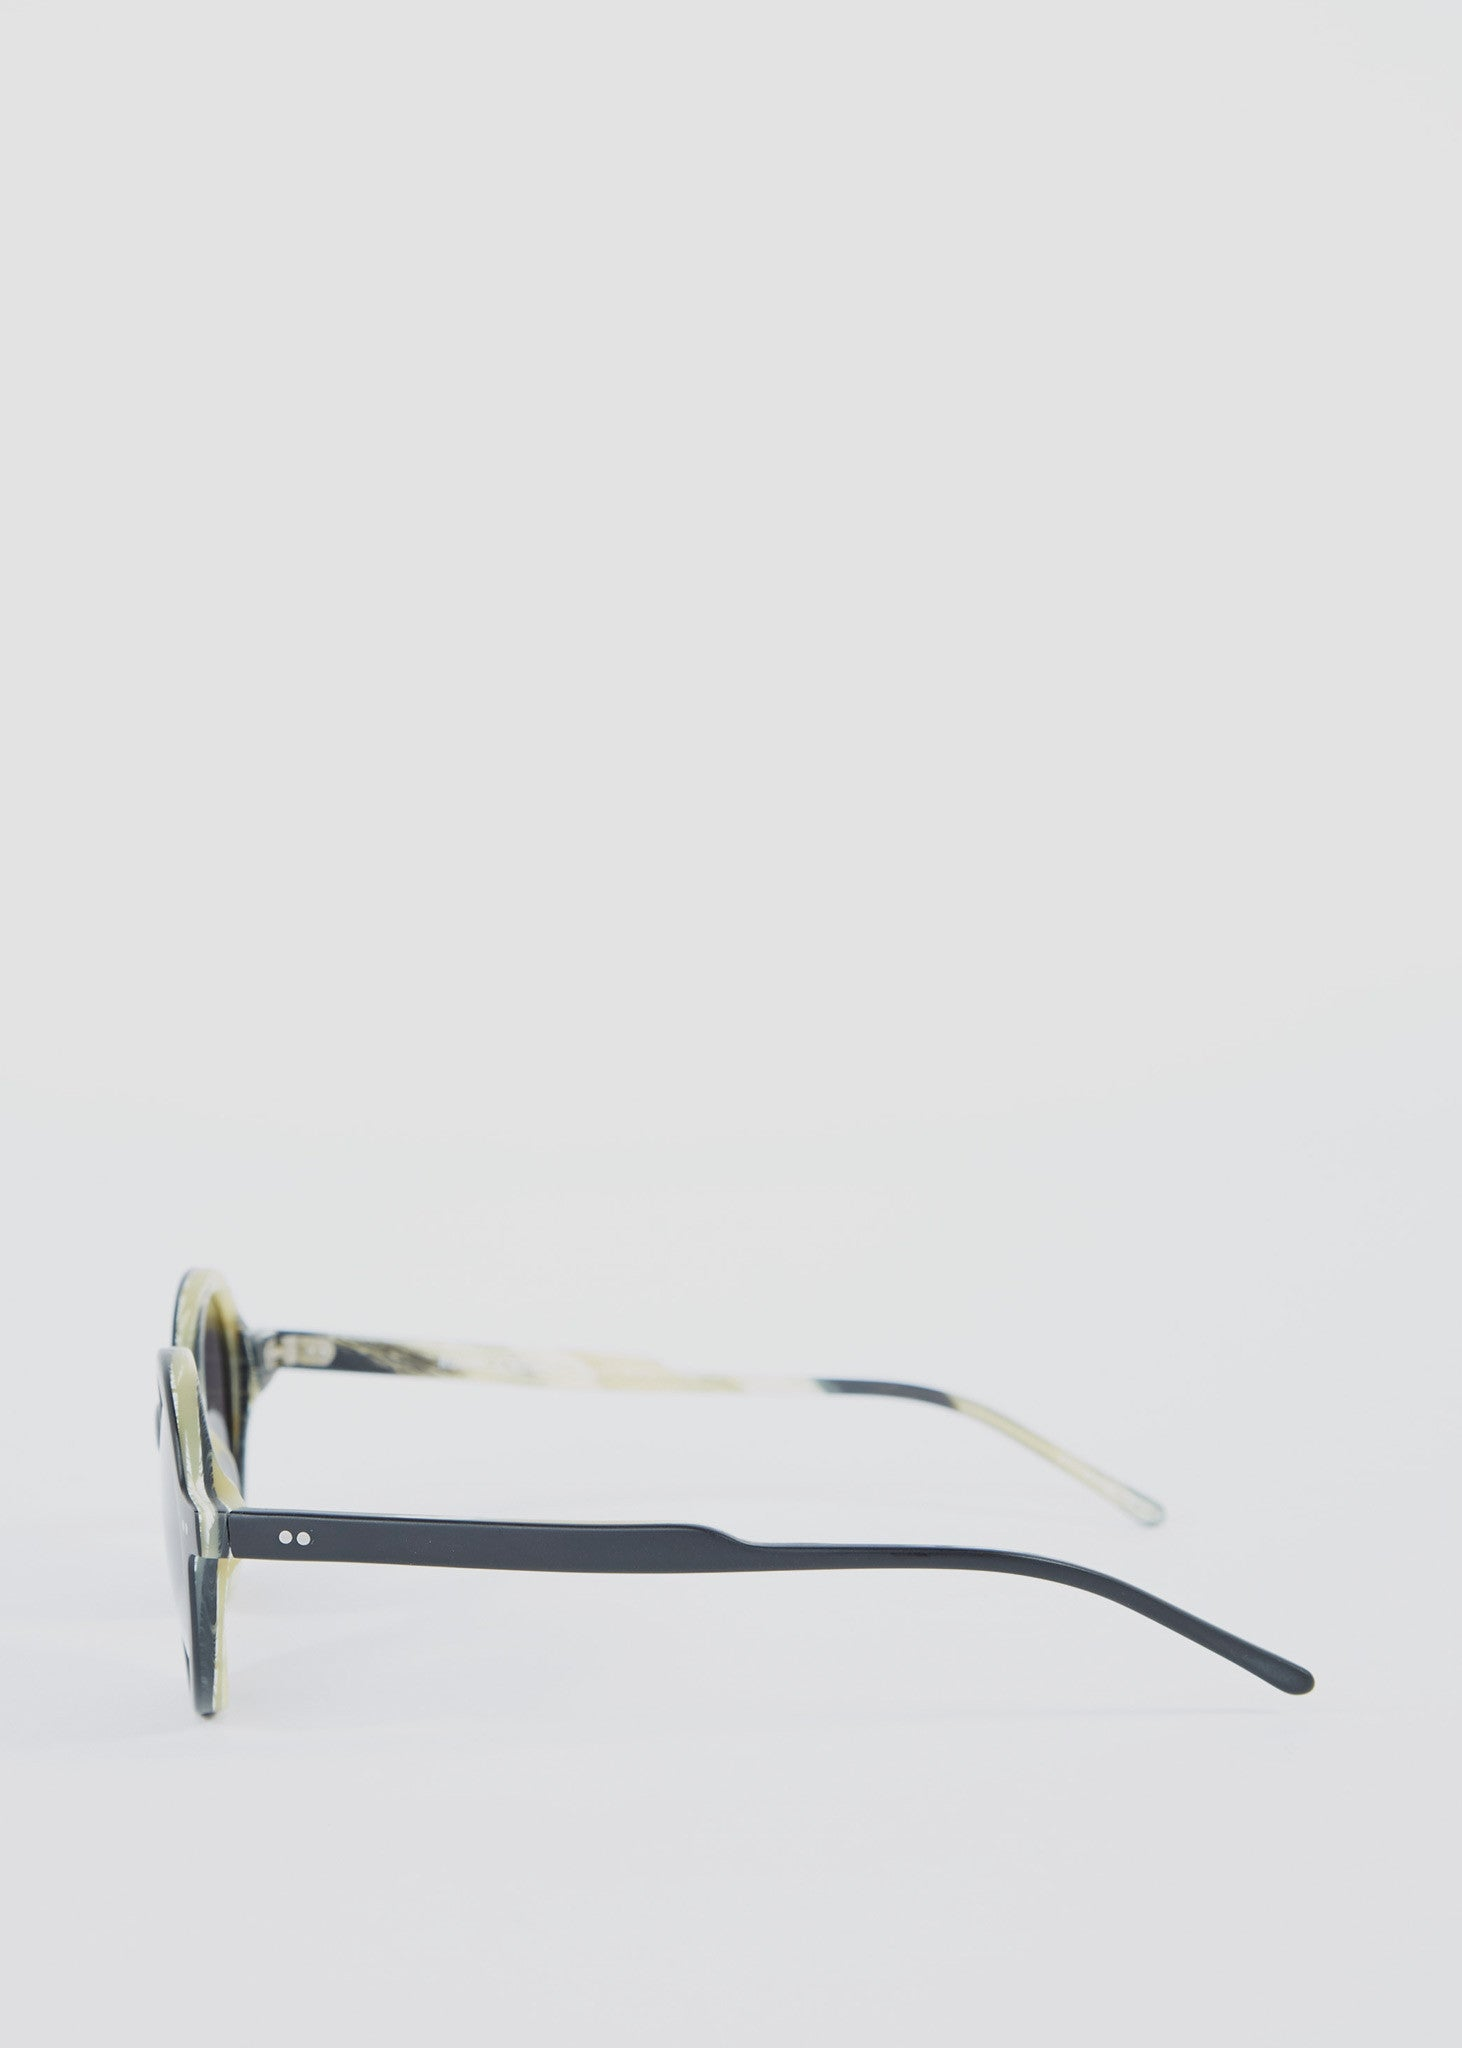 Round & Round Sunglasses Black Horn